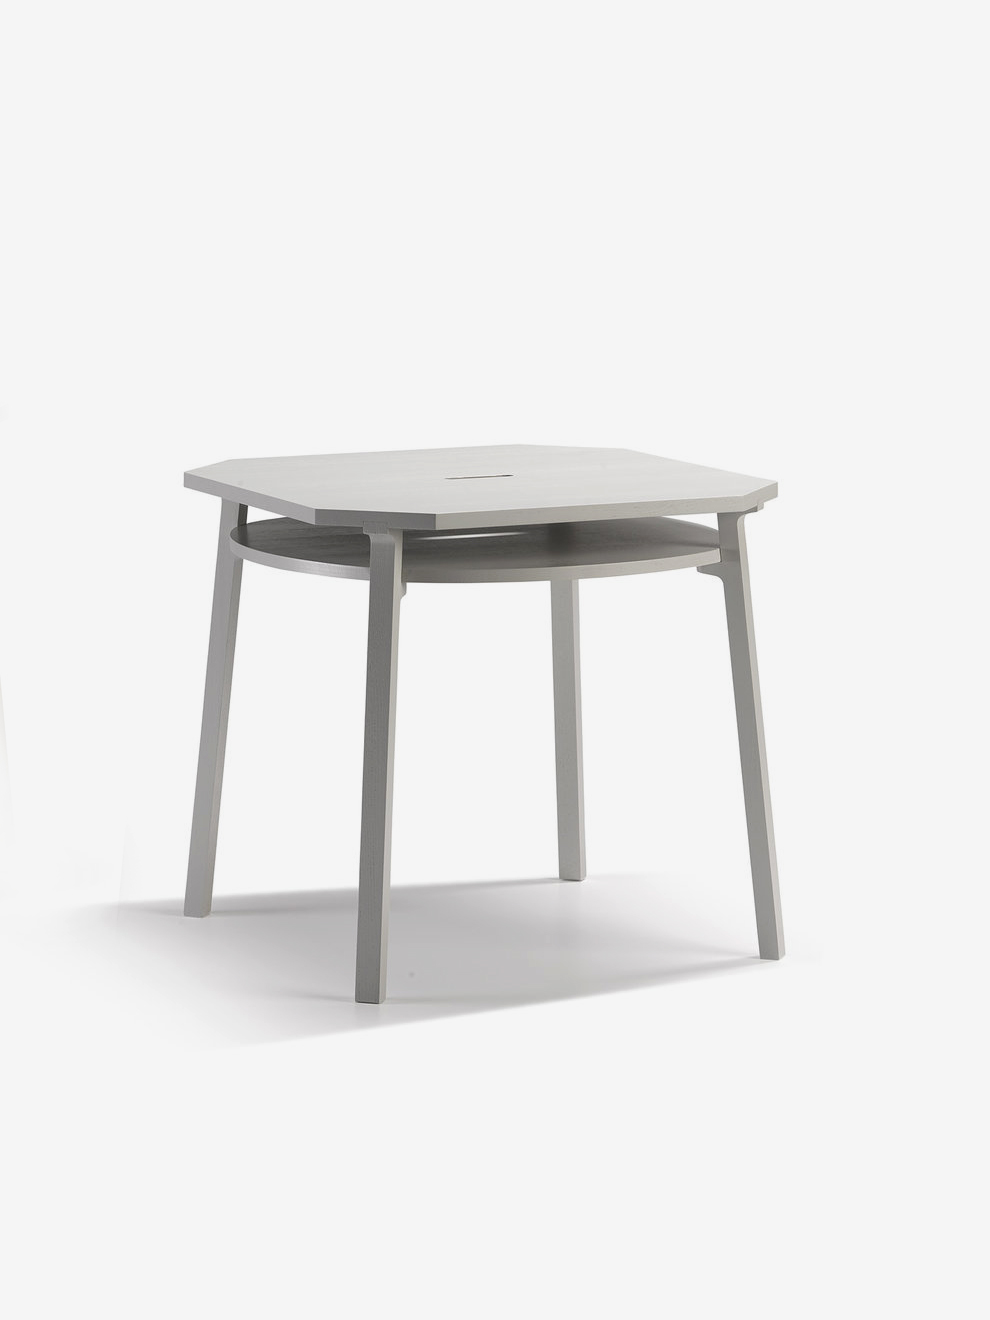 Vandasye_Duo-Table_01_Photo-©-Adolf-Bereuter